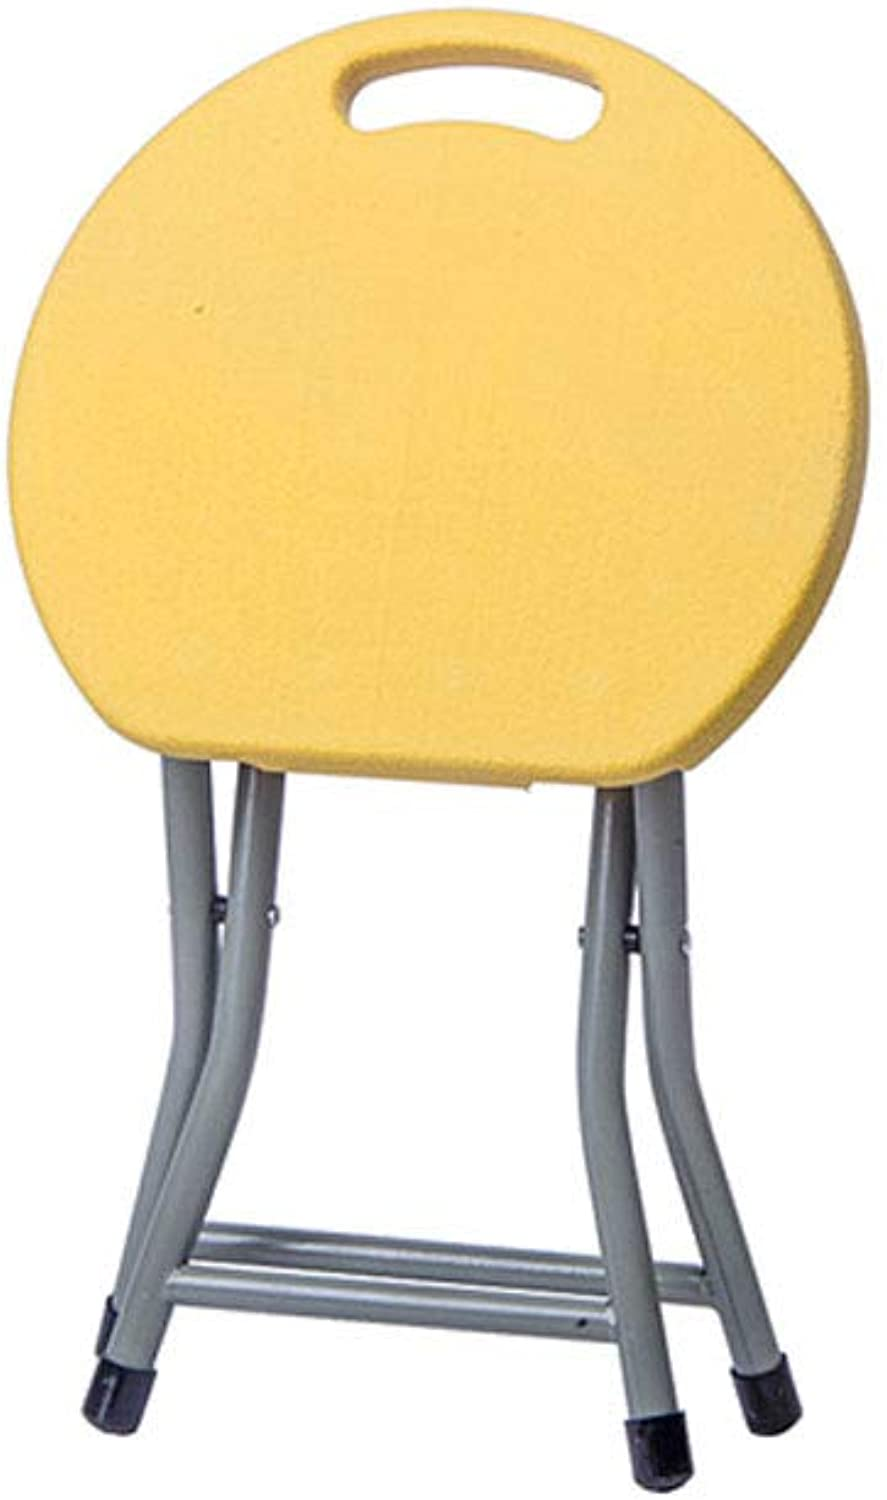 KTYXGKL Folding Chair Home Stool Creative Folding Stool Portable Outdoor Leisure Chair Thick Plastic Table Stool 31x29cm 45x33cm Folding Chair (color   S)